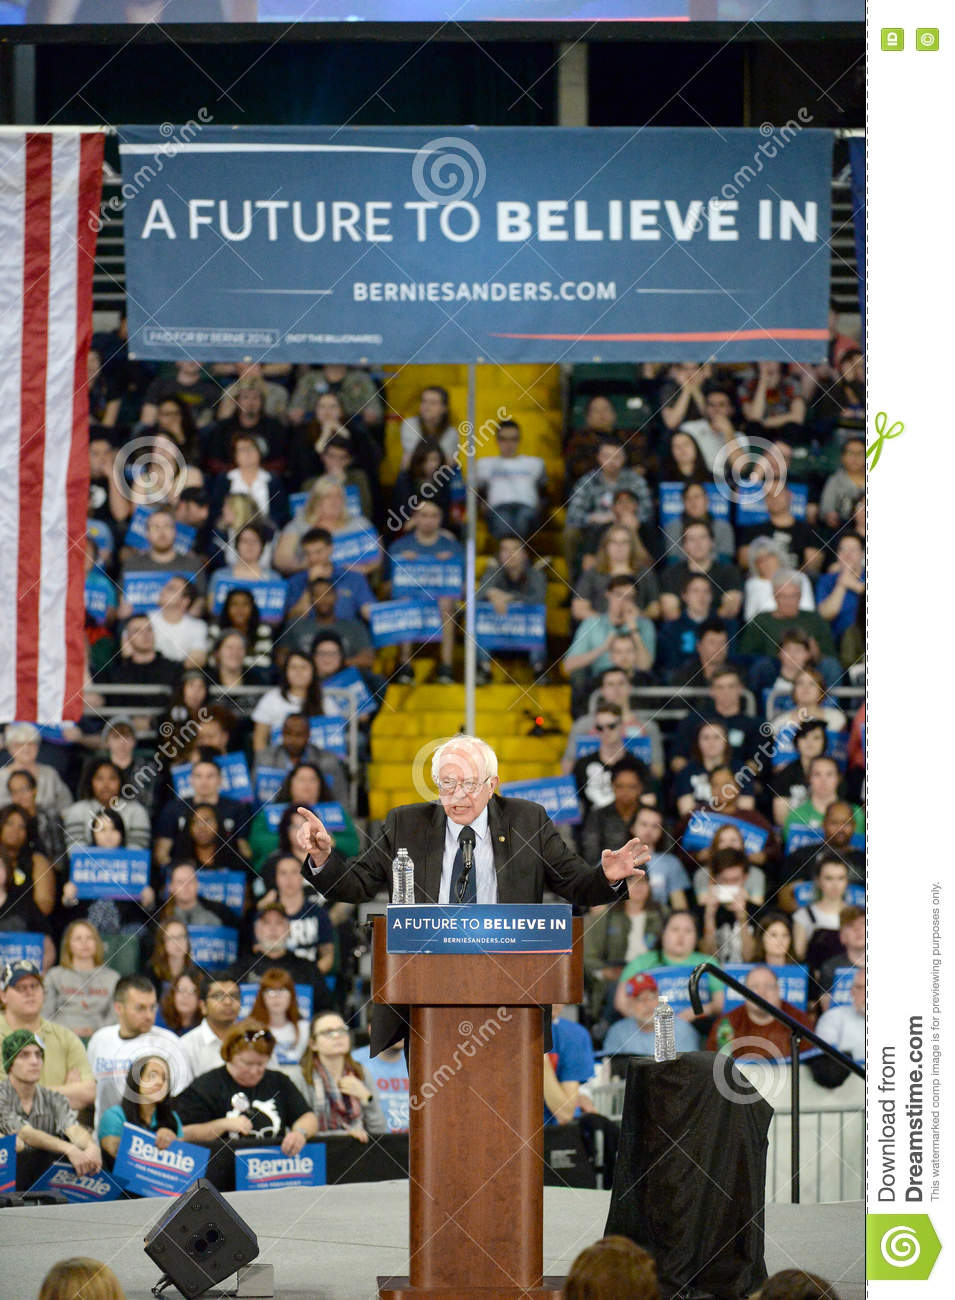 Bernie Sanders rally in Saint Charles, Missouri